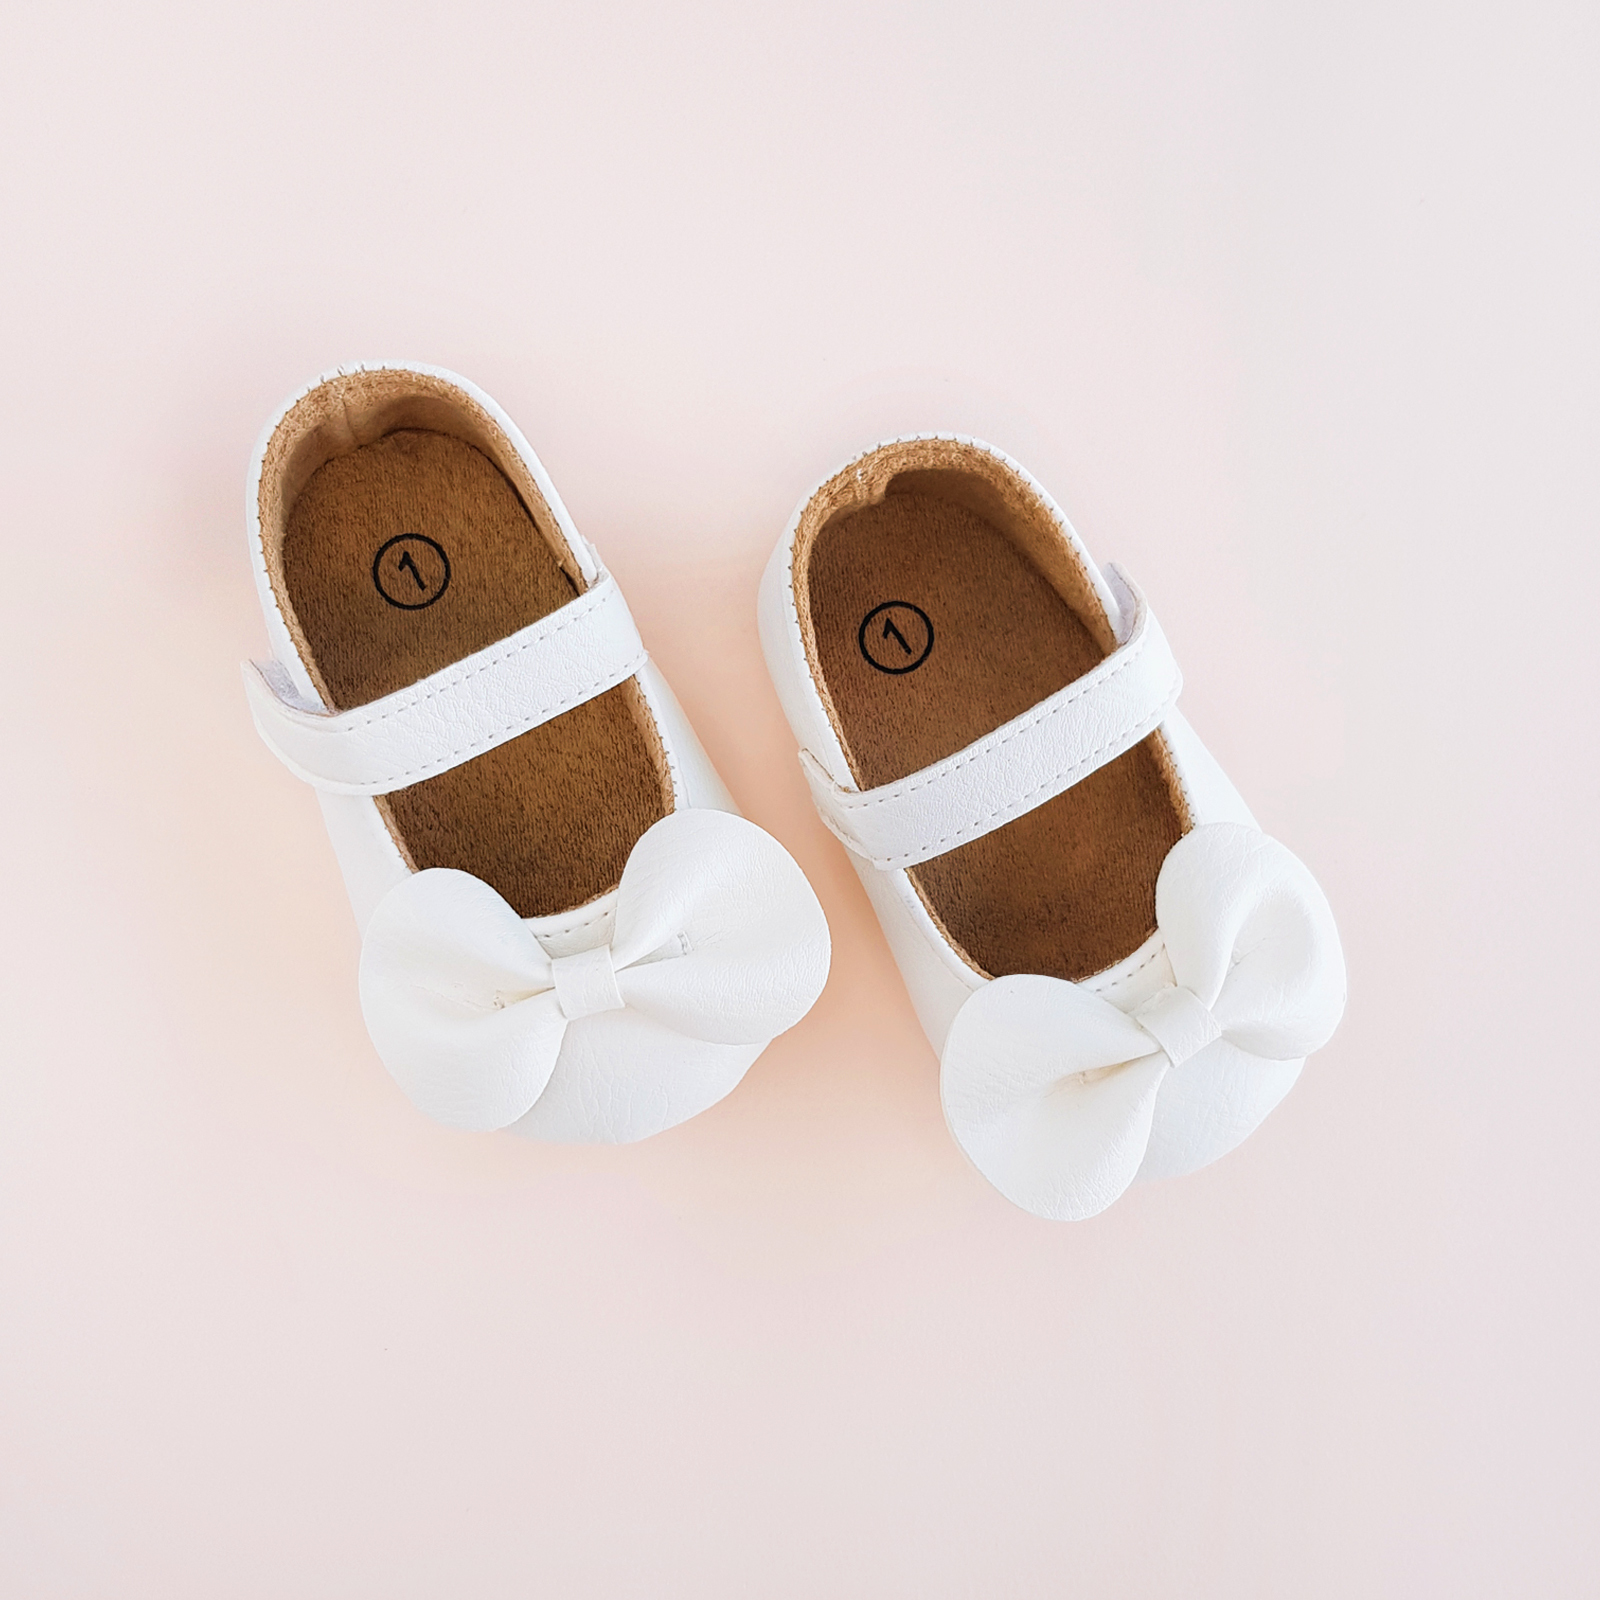 Baby Bow Shoes1600x1600-2.jpg